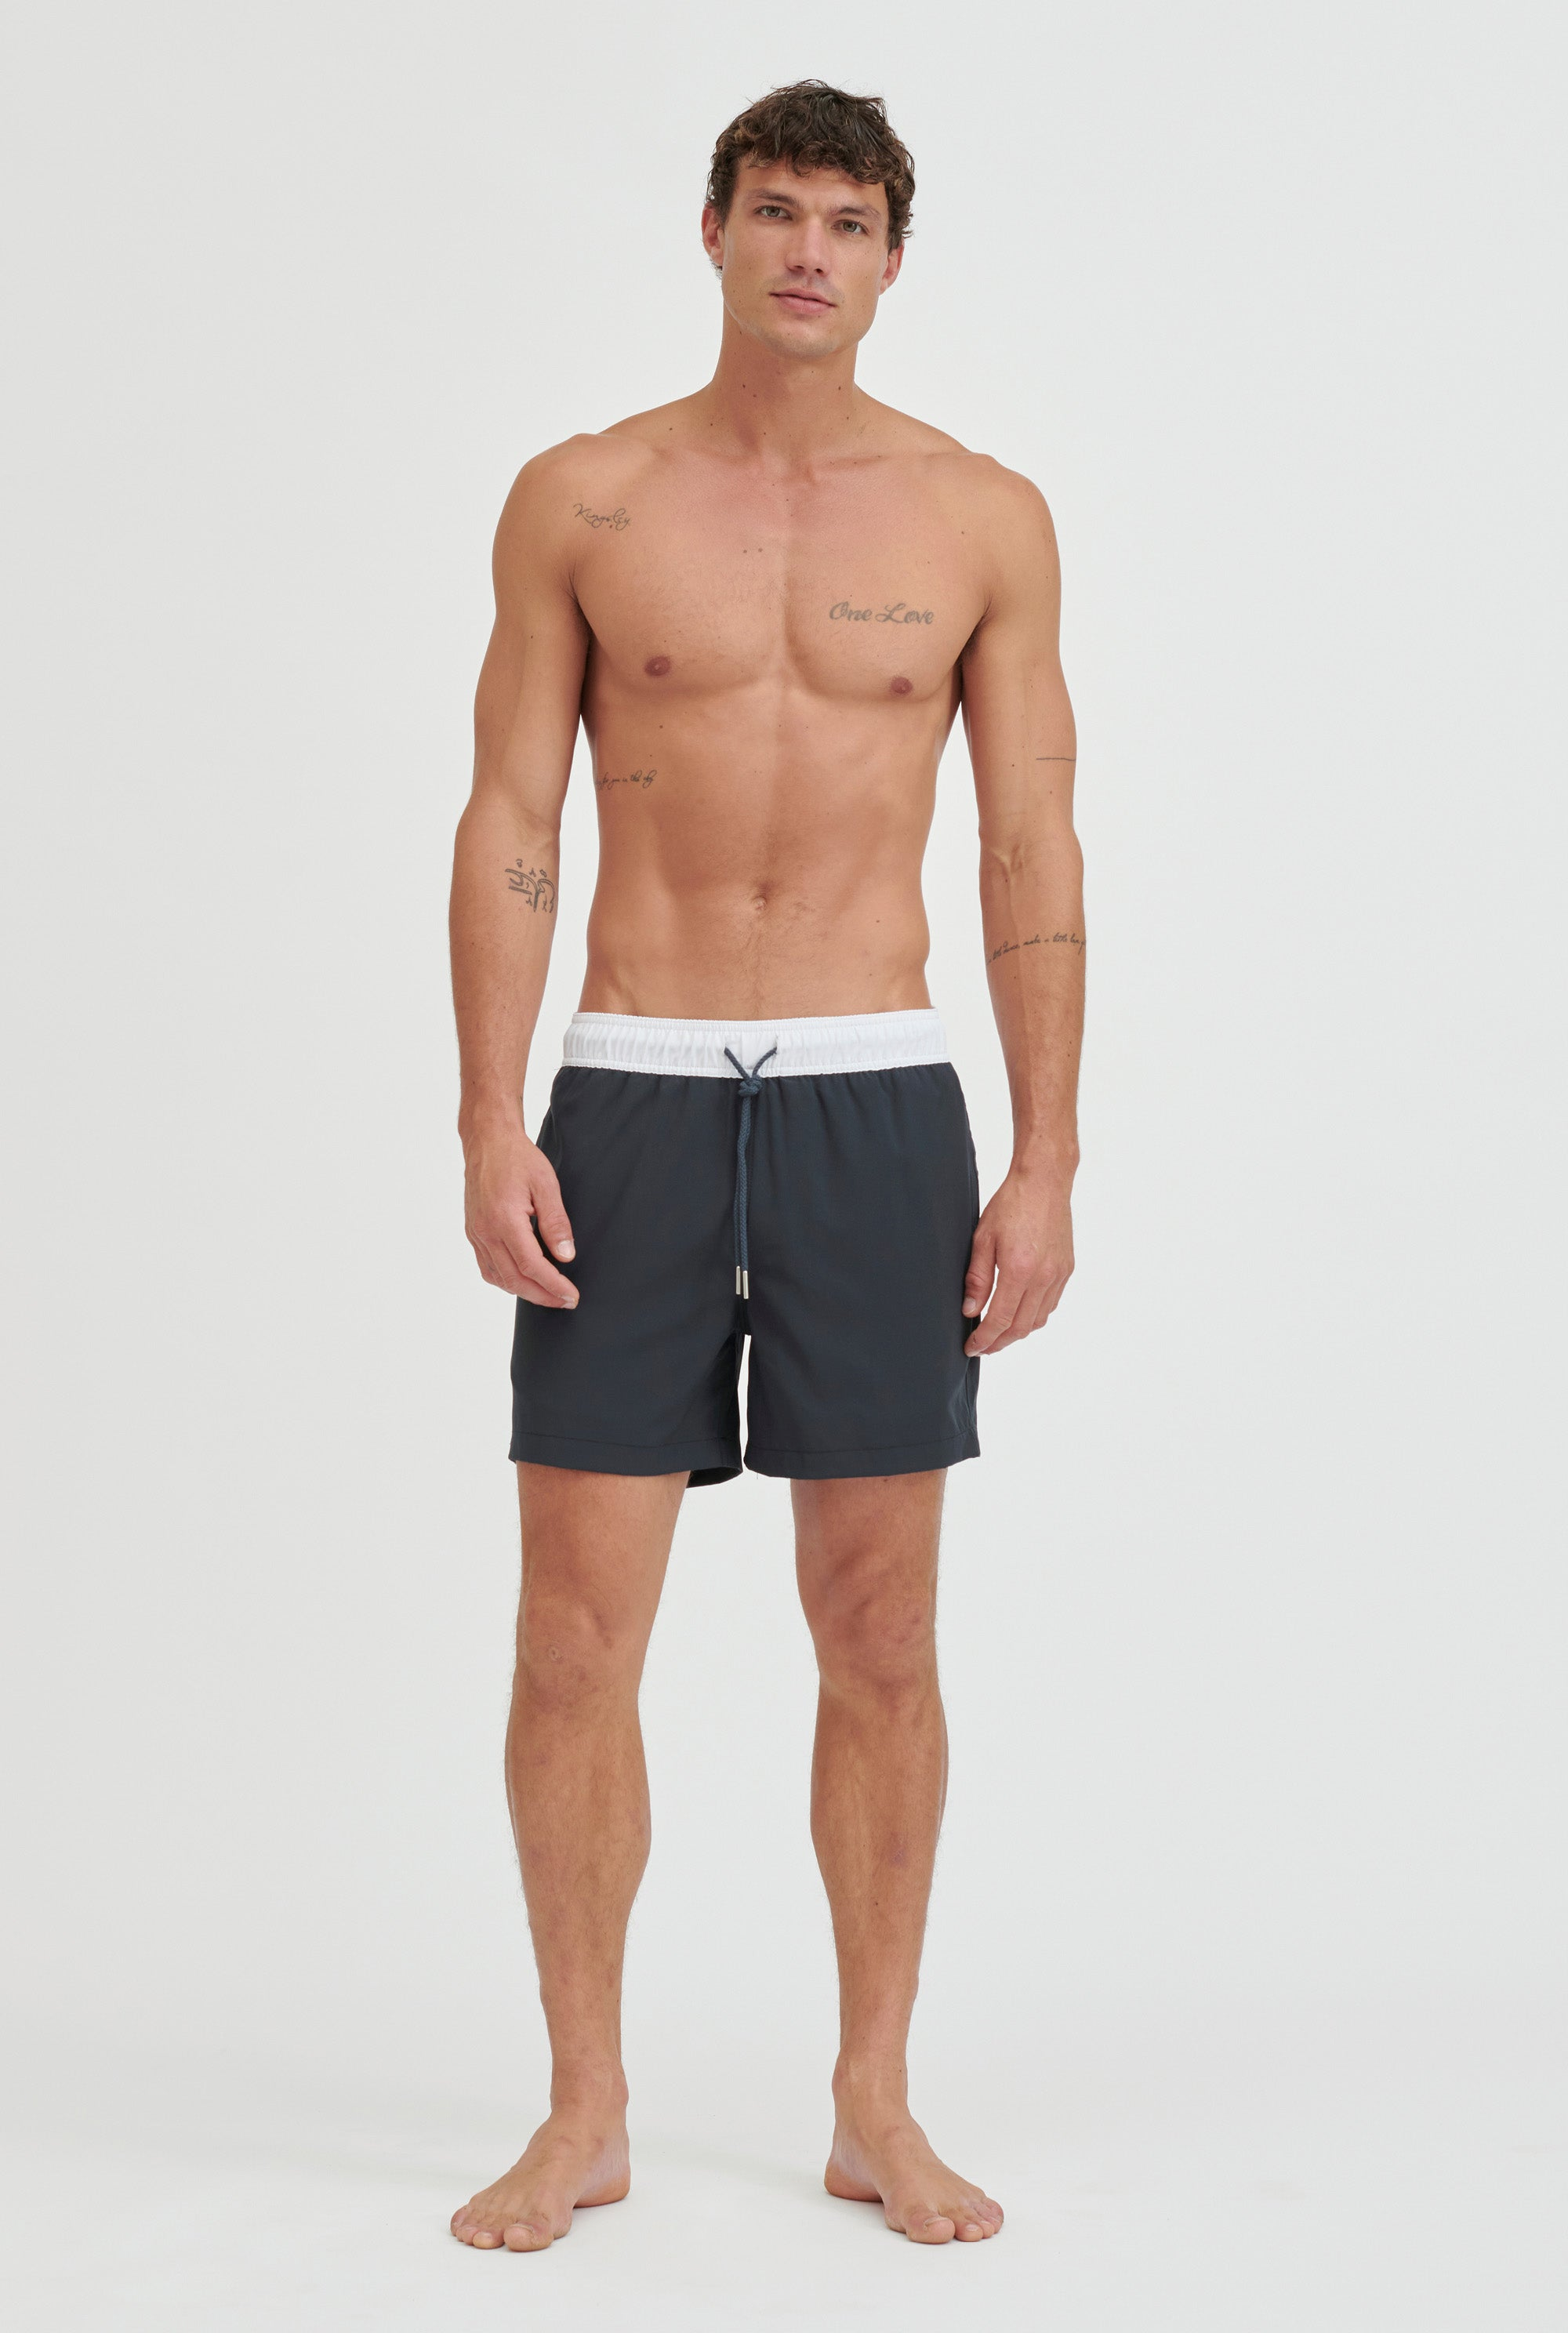 Stretch Swim Short - Navy/White Band